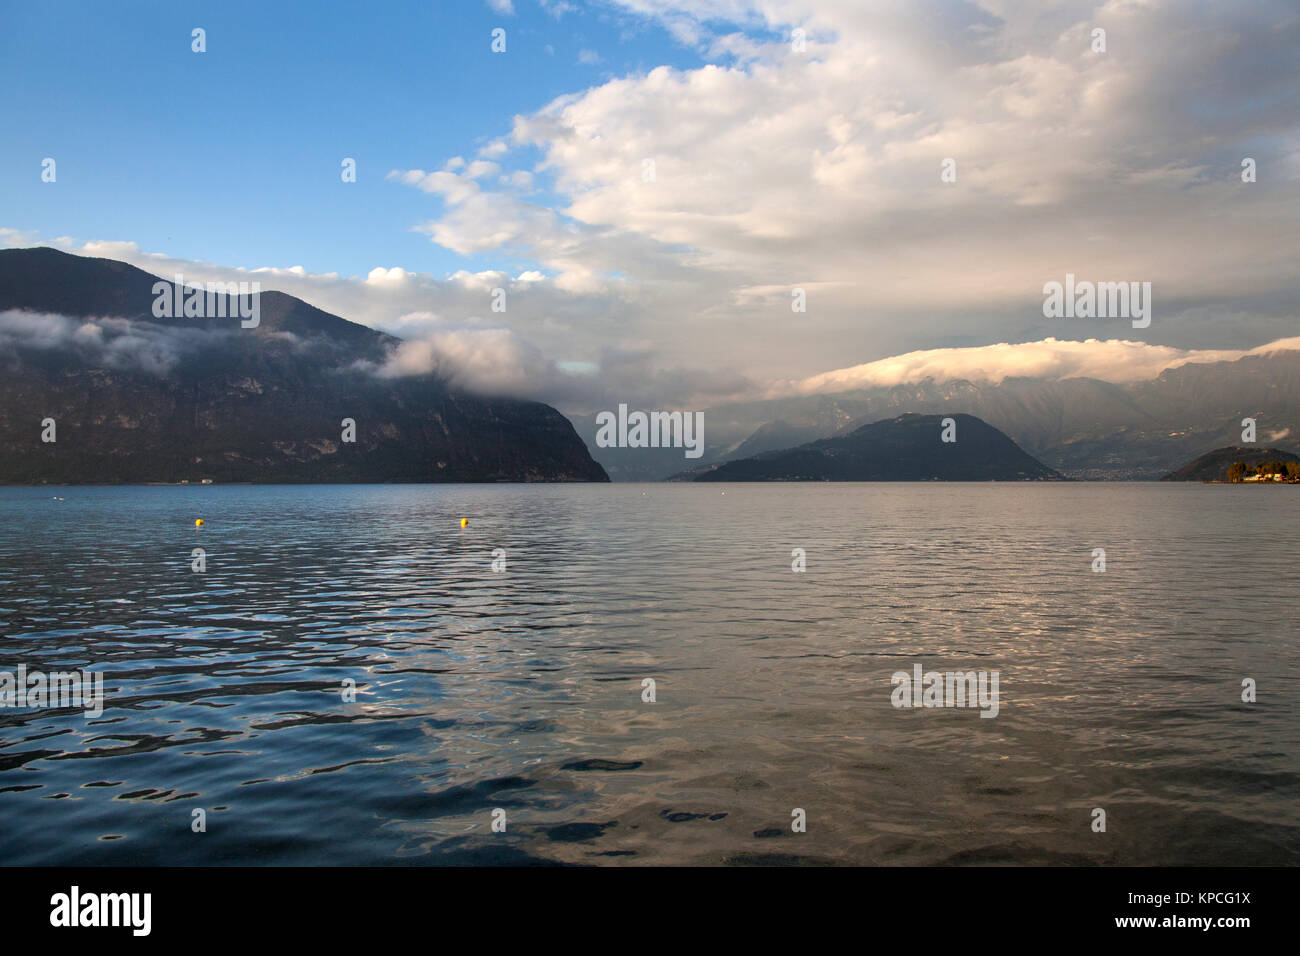 Lake Iseo, Italy. Picturesque dusk view of Lake Iseo, with the Predore peninsula on the left of the image and the Stock Photo